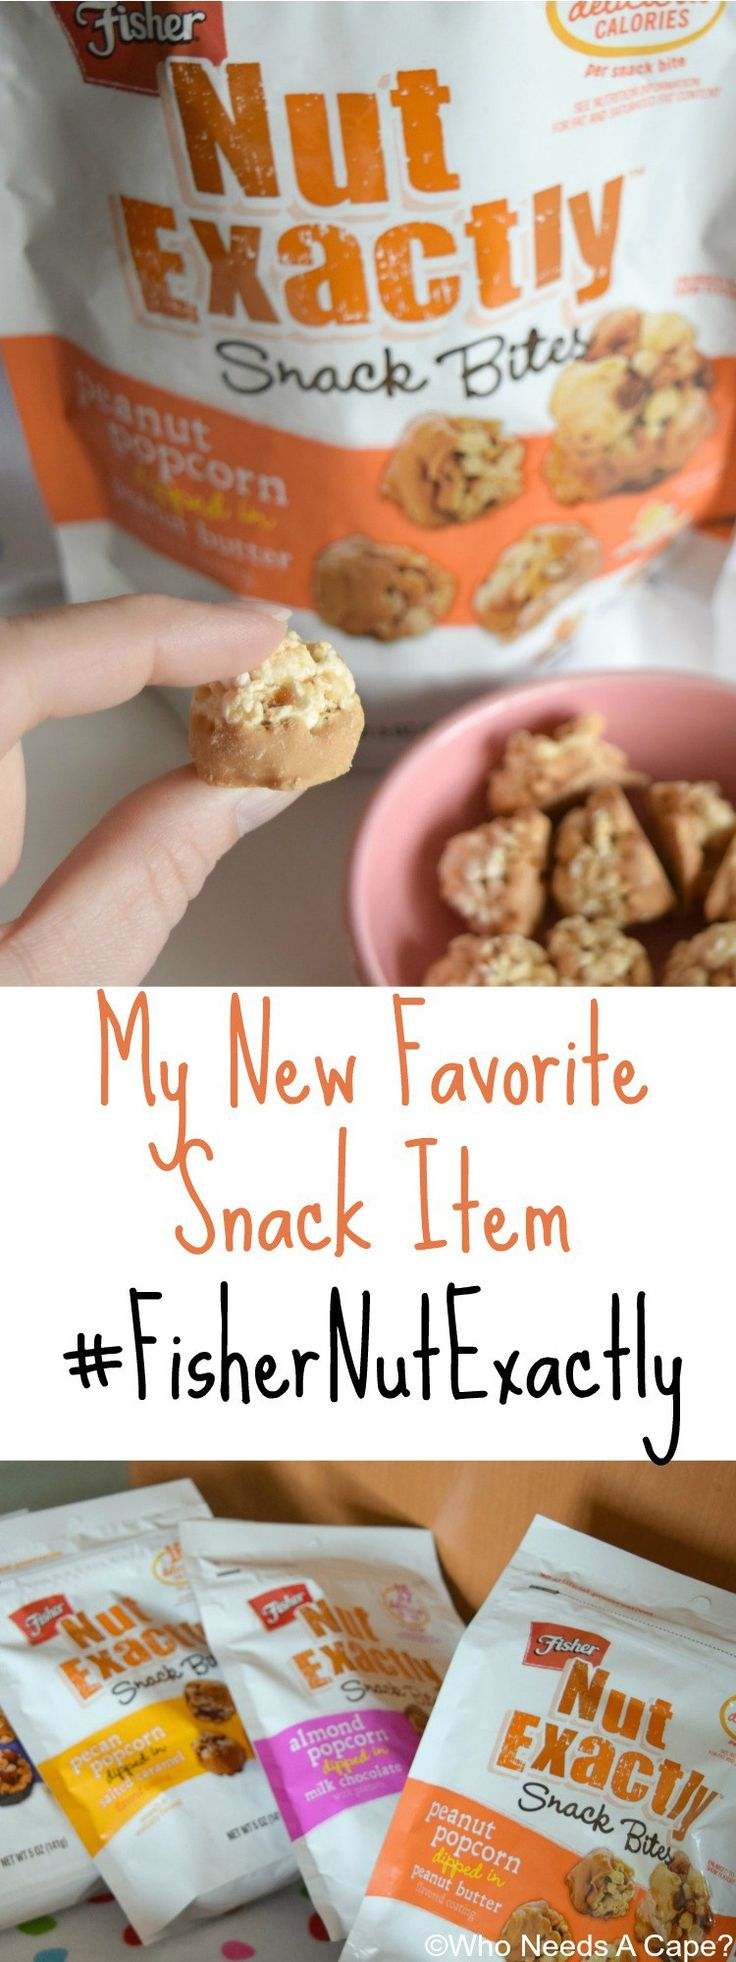 My New Favorite Snack Item comes in a variety of flavors. Fisher Nut Exactly® has a flavor for everyone and they are delish! [ad] #FisherNutExactly